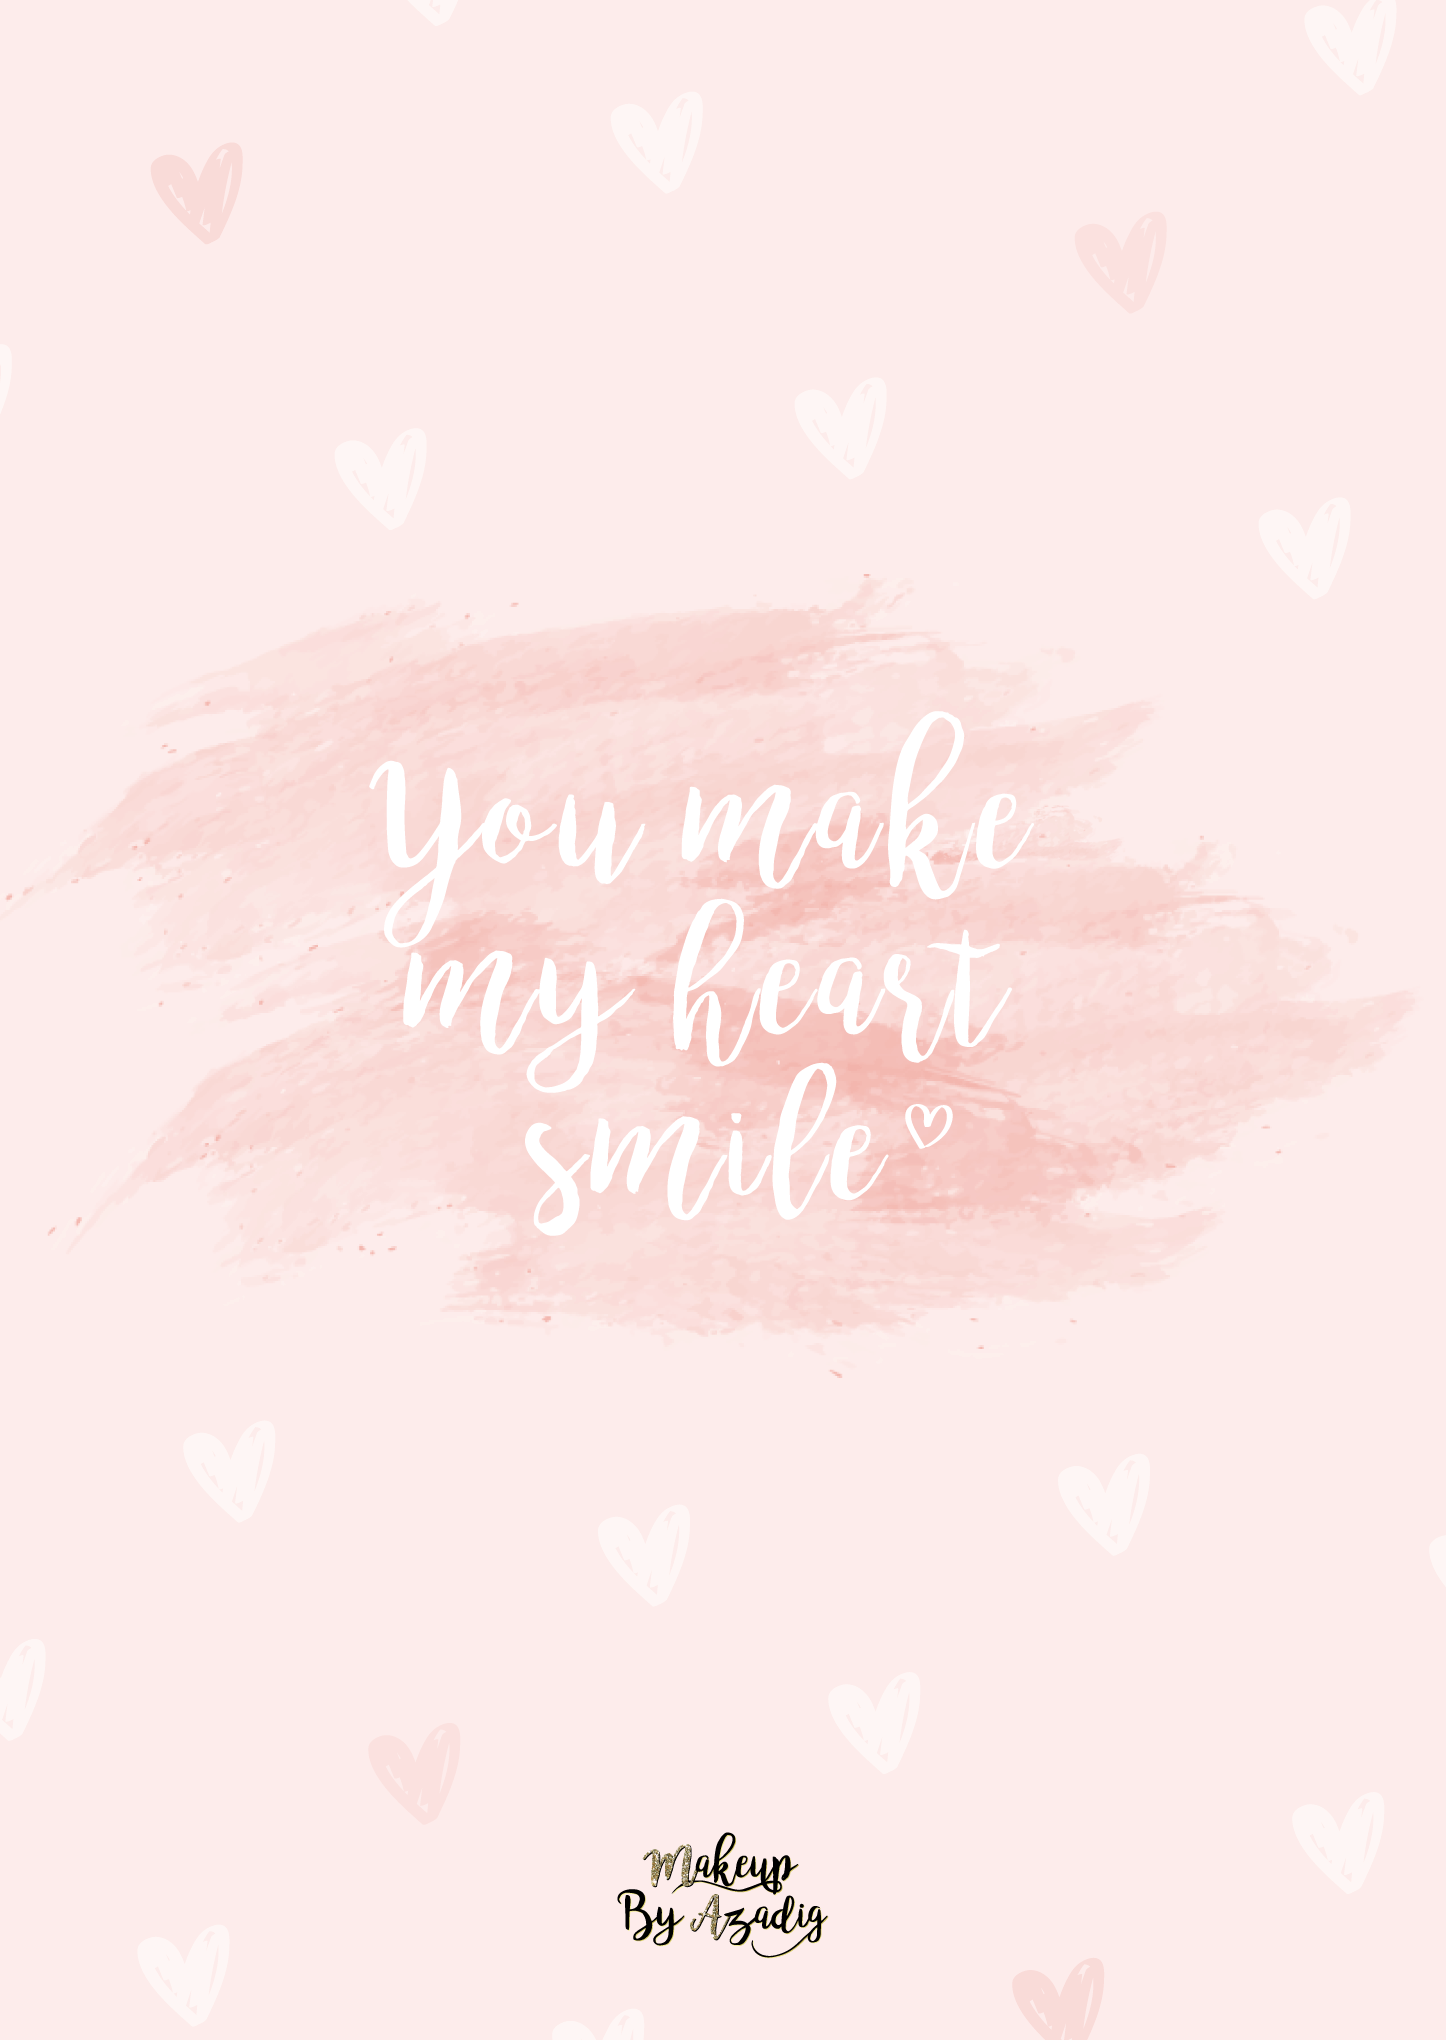 fond-decran-wallpaper-coeur-love-amour-citation-you-make-my-heart-smile-rose-girly-ipad-tablette-apple-makeupbyazadig-tendance